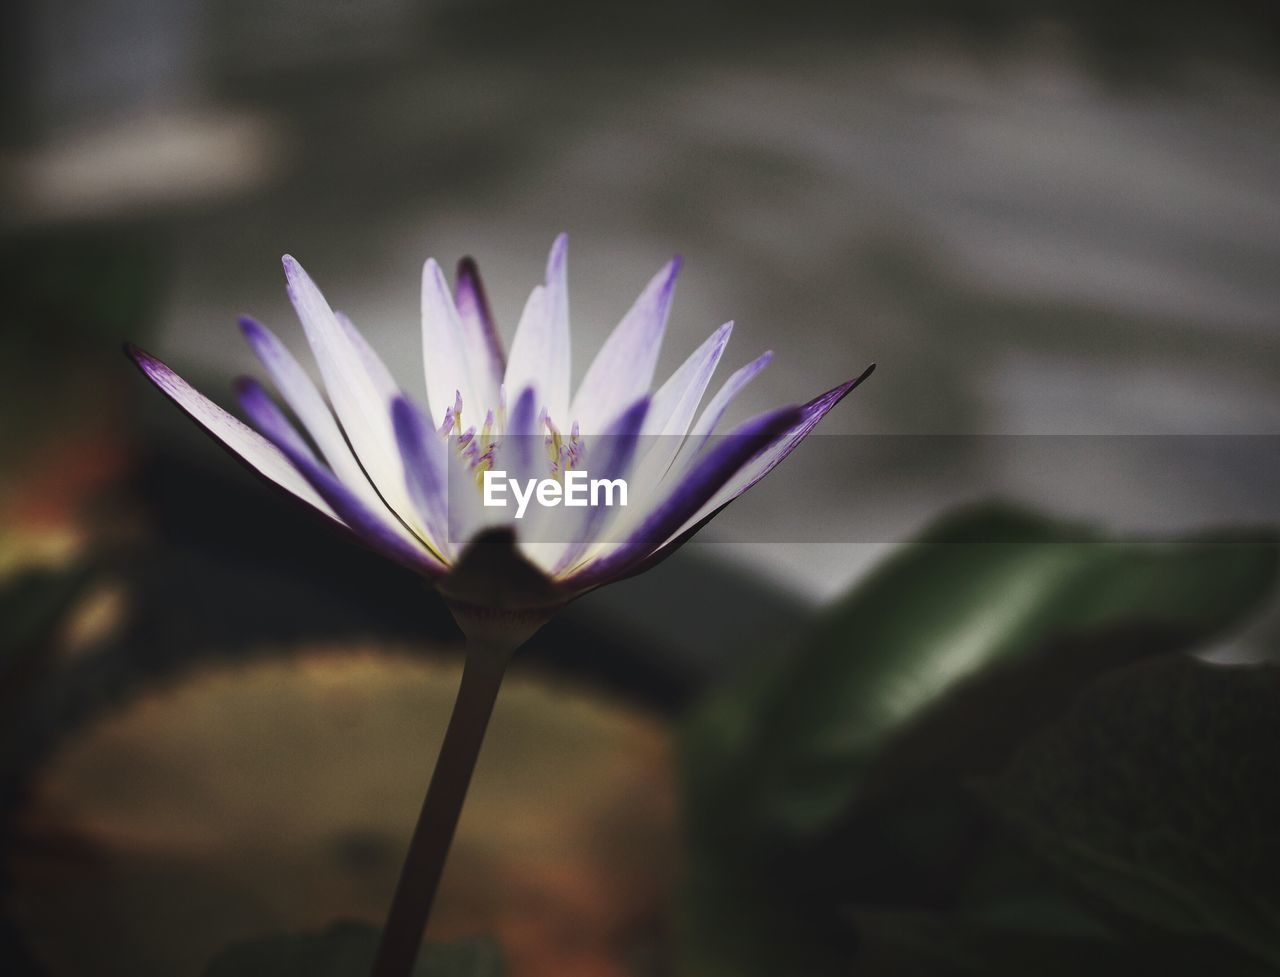 flower, fragility, petal, beauty in nature, nature, growth, freshness, flower head, plant, selective focus, outdoors, close-up, day, no people, focus on foreground, blooming, leaf, lotus water lily, crocus